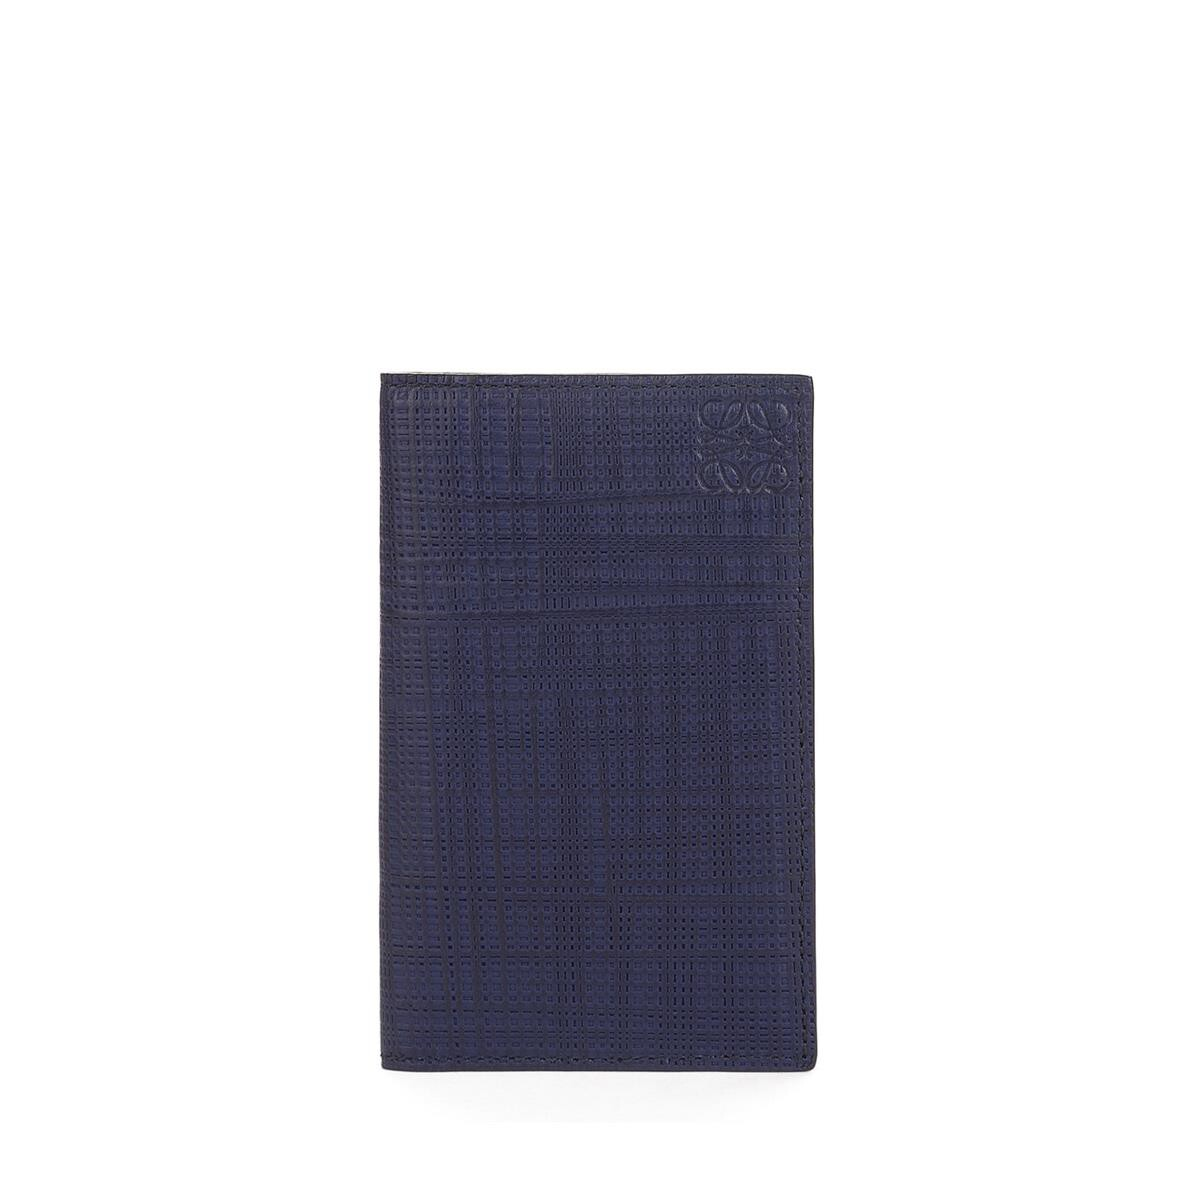 LOEWE Compact Wallet Navy Blue front